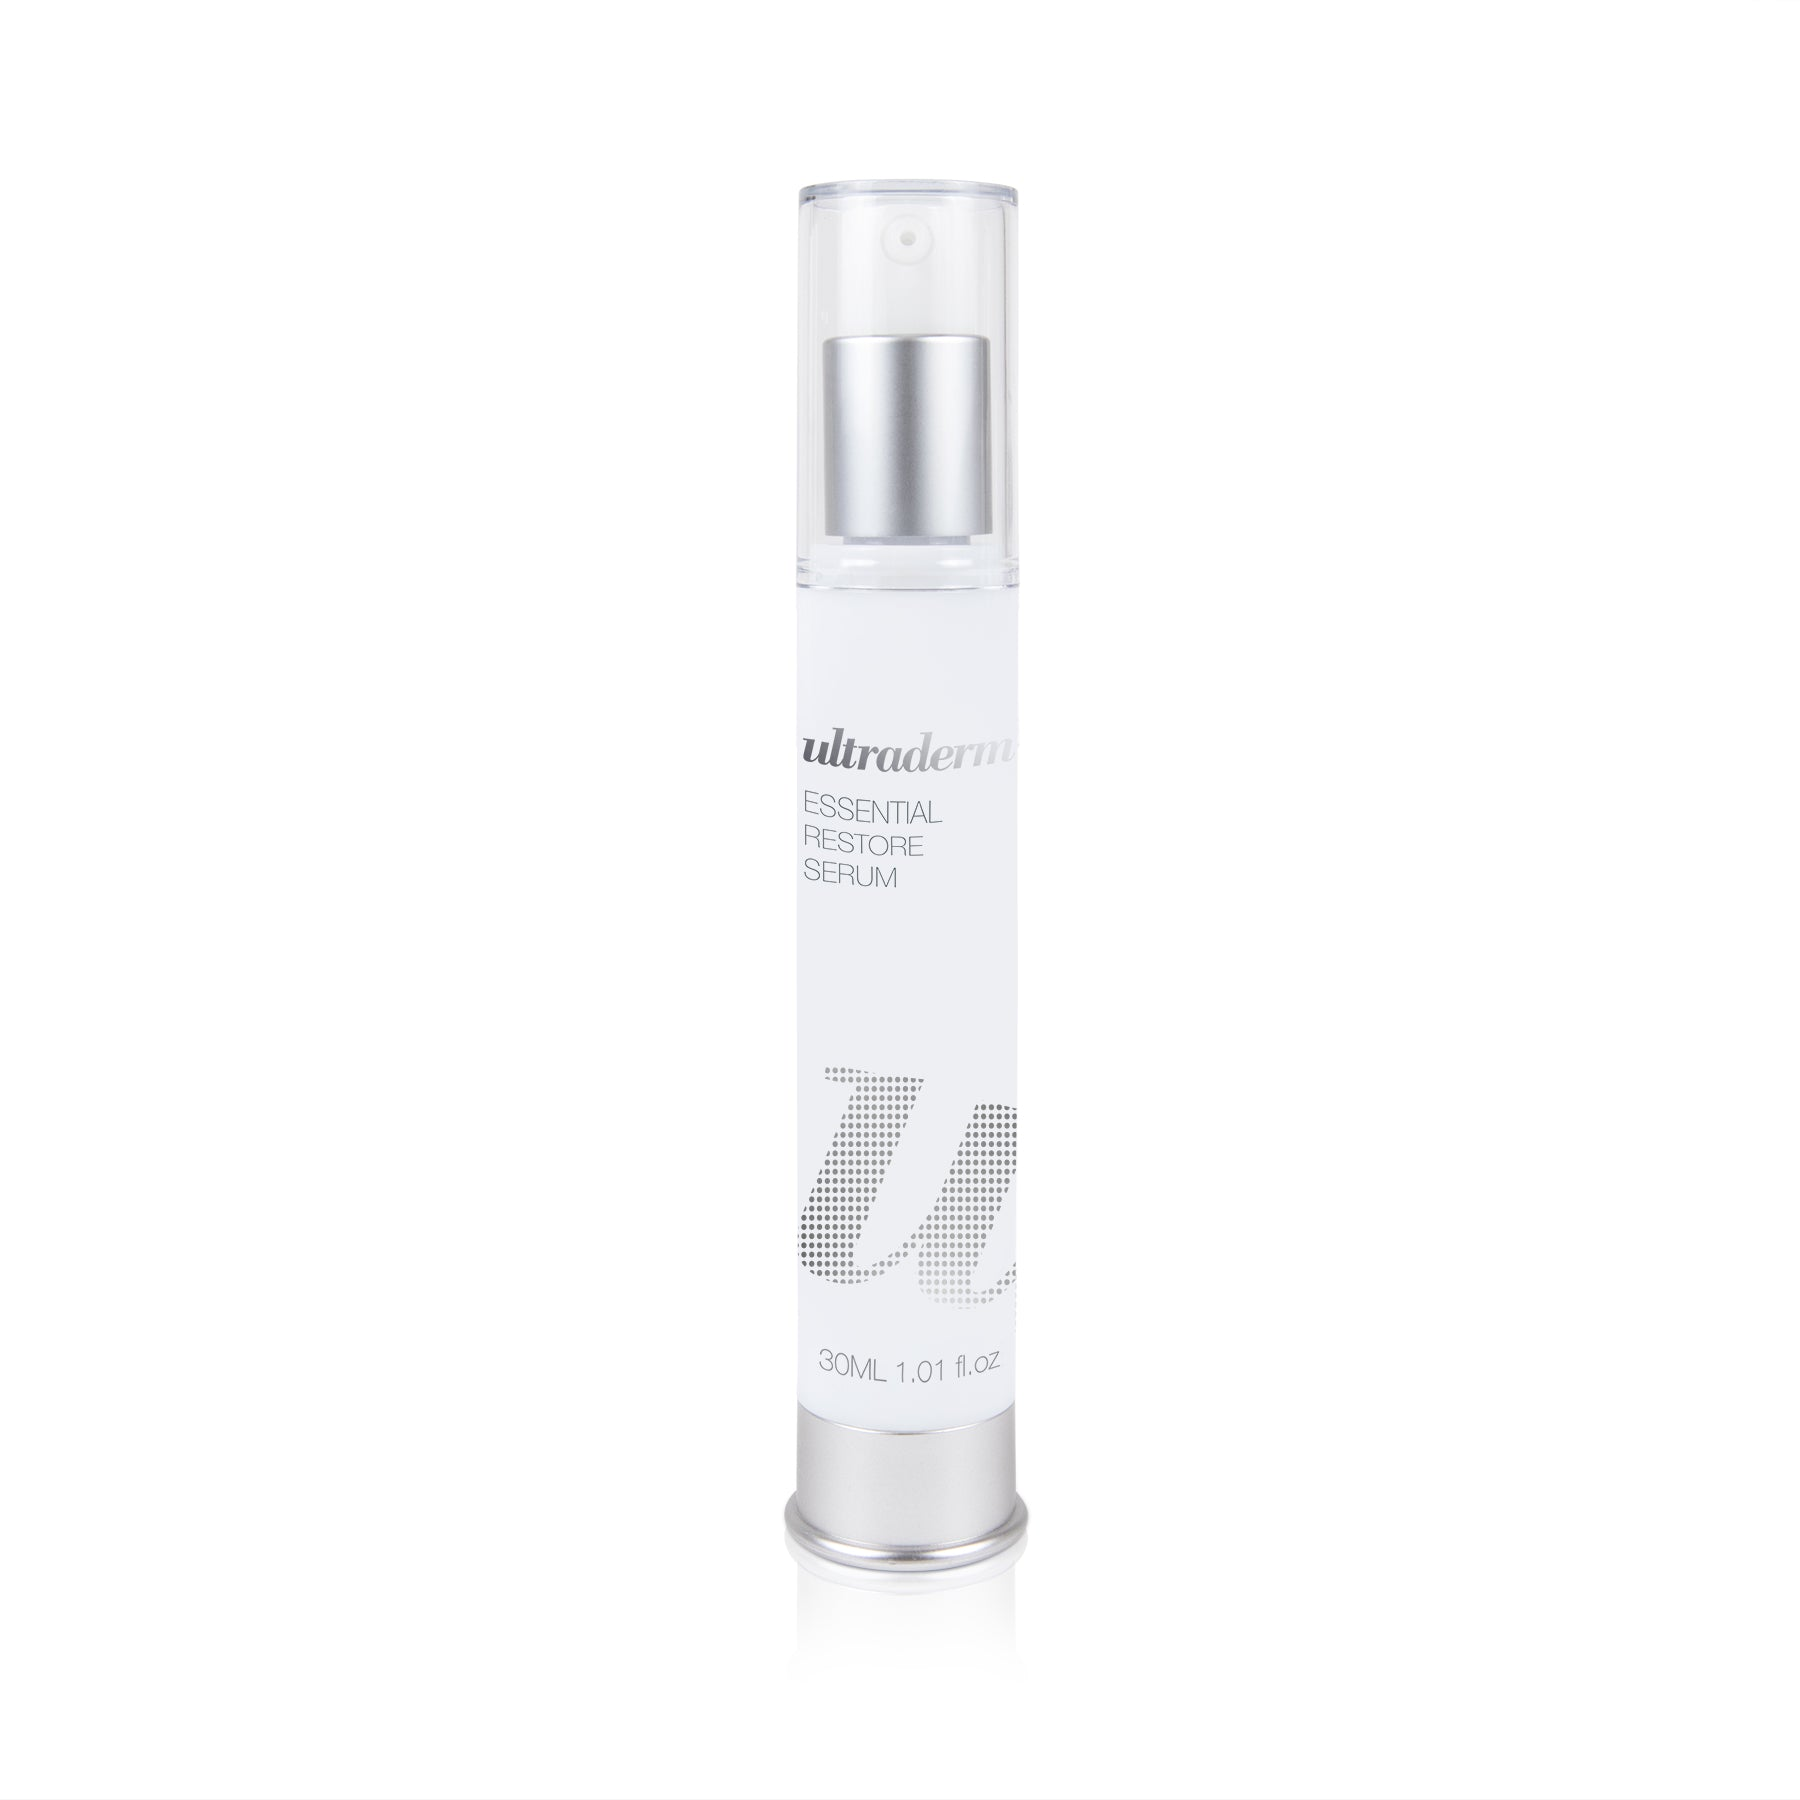 Ultraderm Essential Restore Serum, Nourishing & Repairing Serum